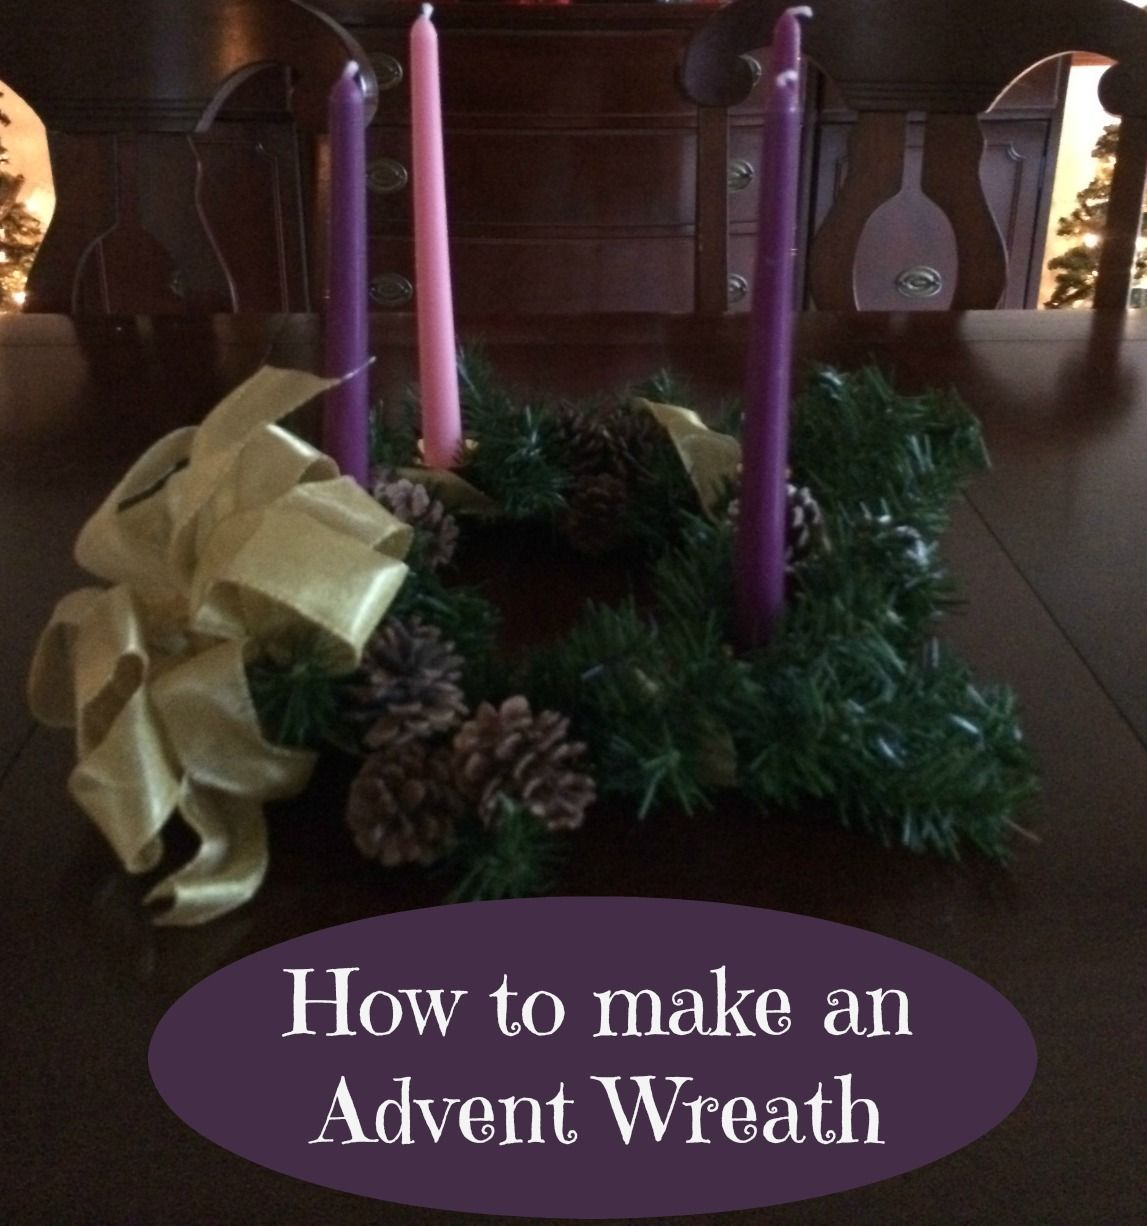 How to make an Advent Wreath in 4 Easy Steps by